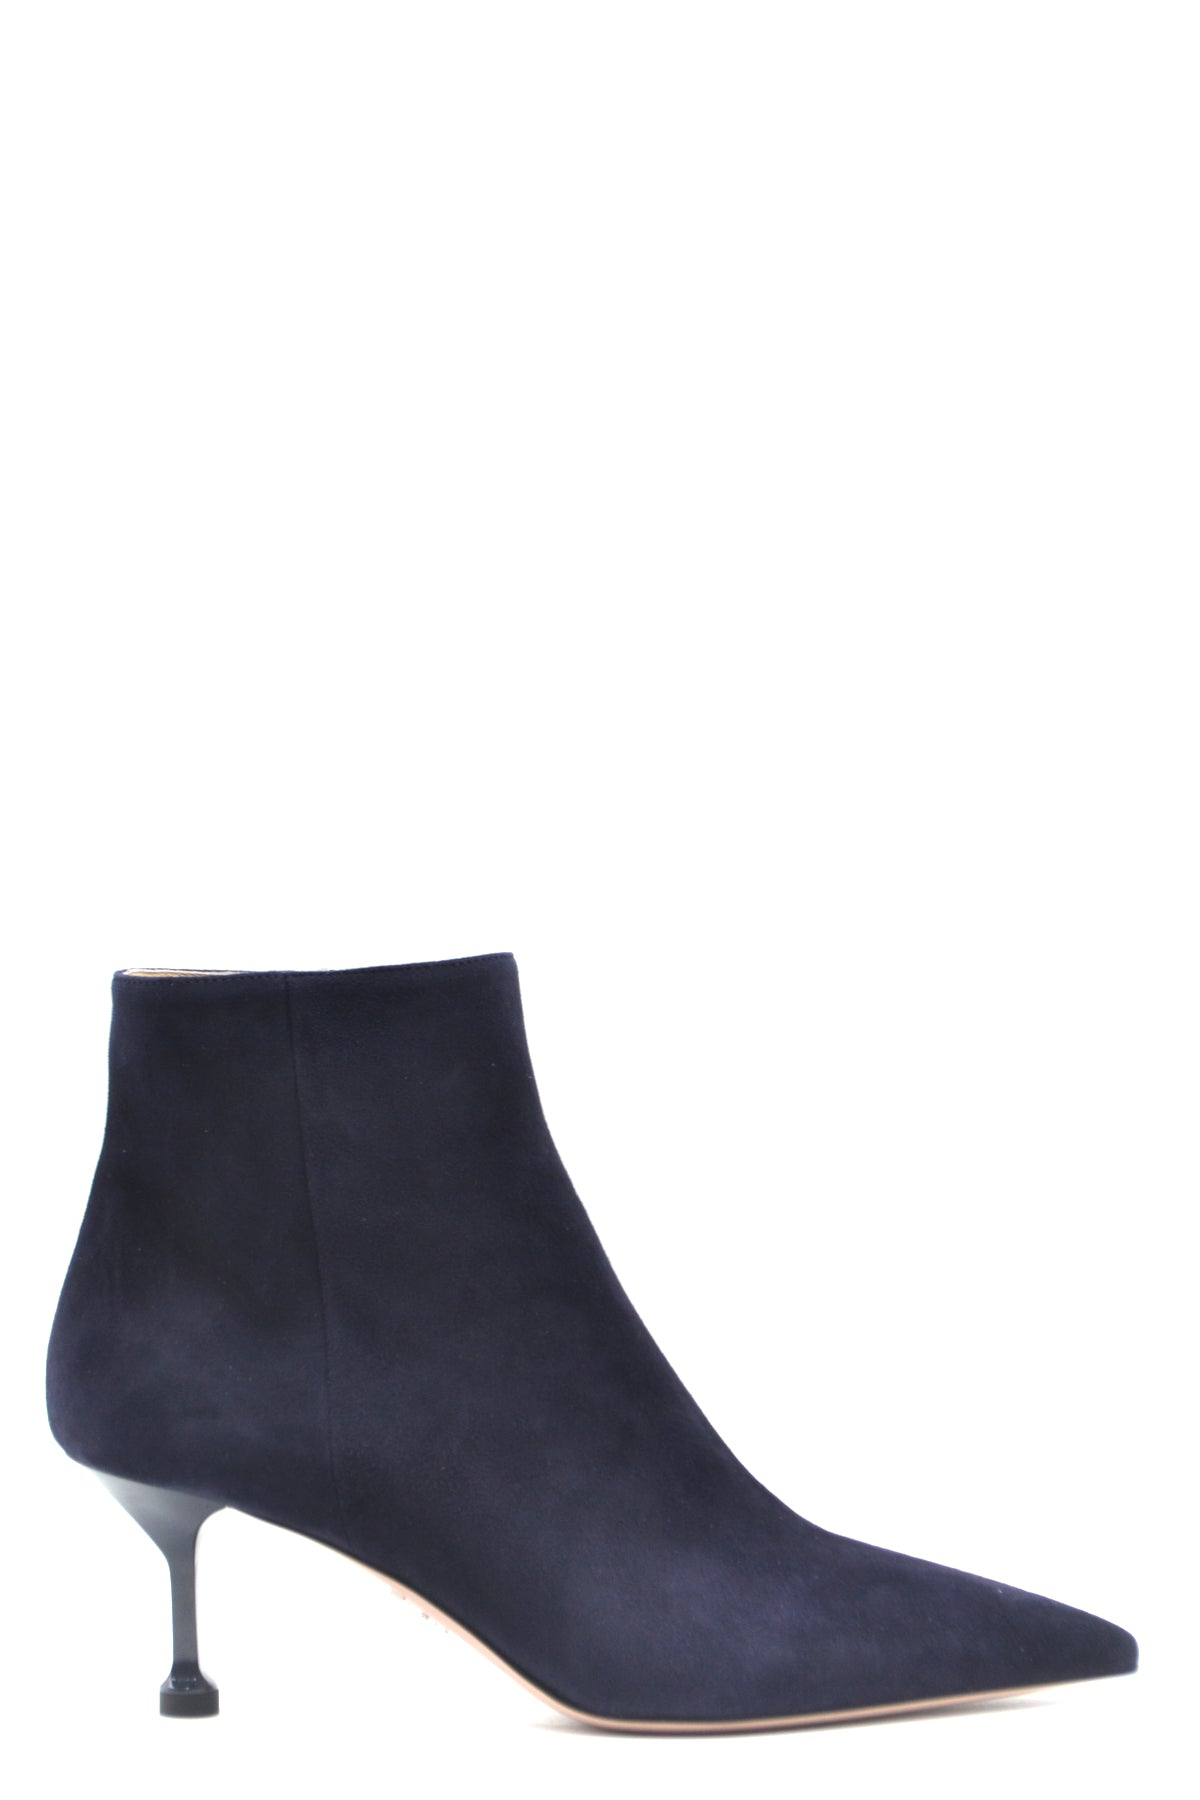 Shoes Prada-Women's Fashion - Women's Shoes - Women's Boots-36-Product Details Terms: New With LabelMain Color: BlueType Of Accessory: BootsSeason: Fall / WinterMade In: ItalyGender: WomanHeel'S Height: 6,5Size: EuComposition: Chamois 100%Year: 2020Manufacturer Part Number: 1T636L 008 F008-Keyomi-Sook